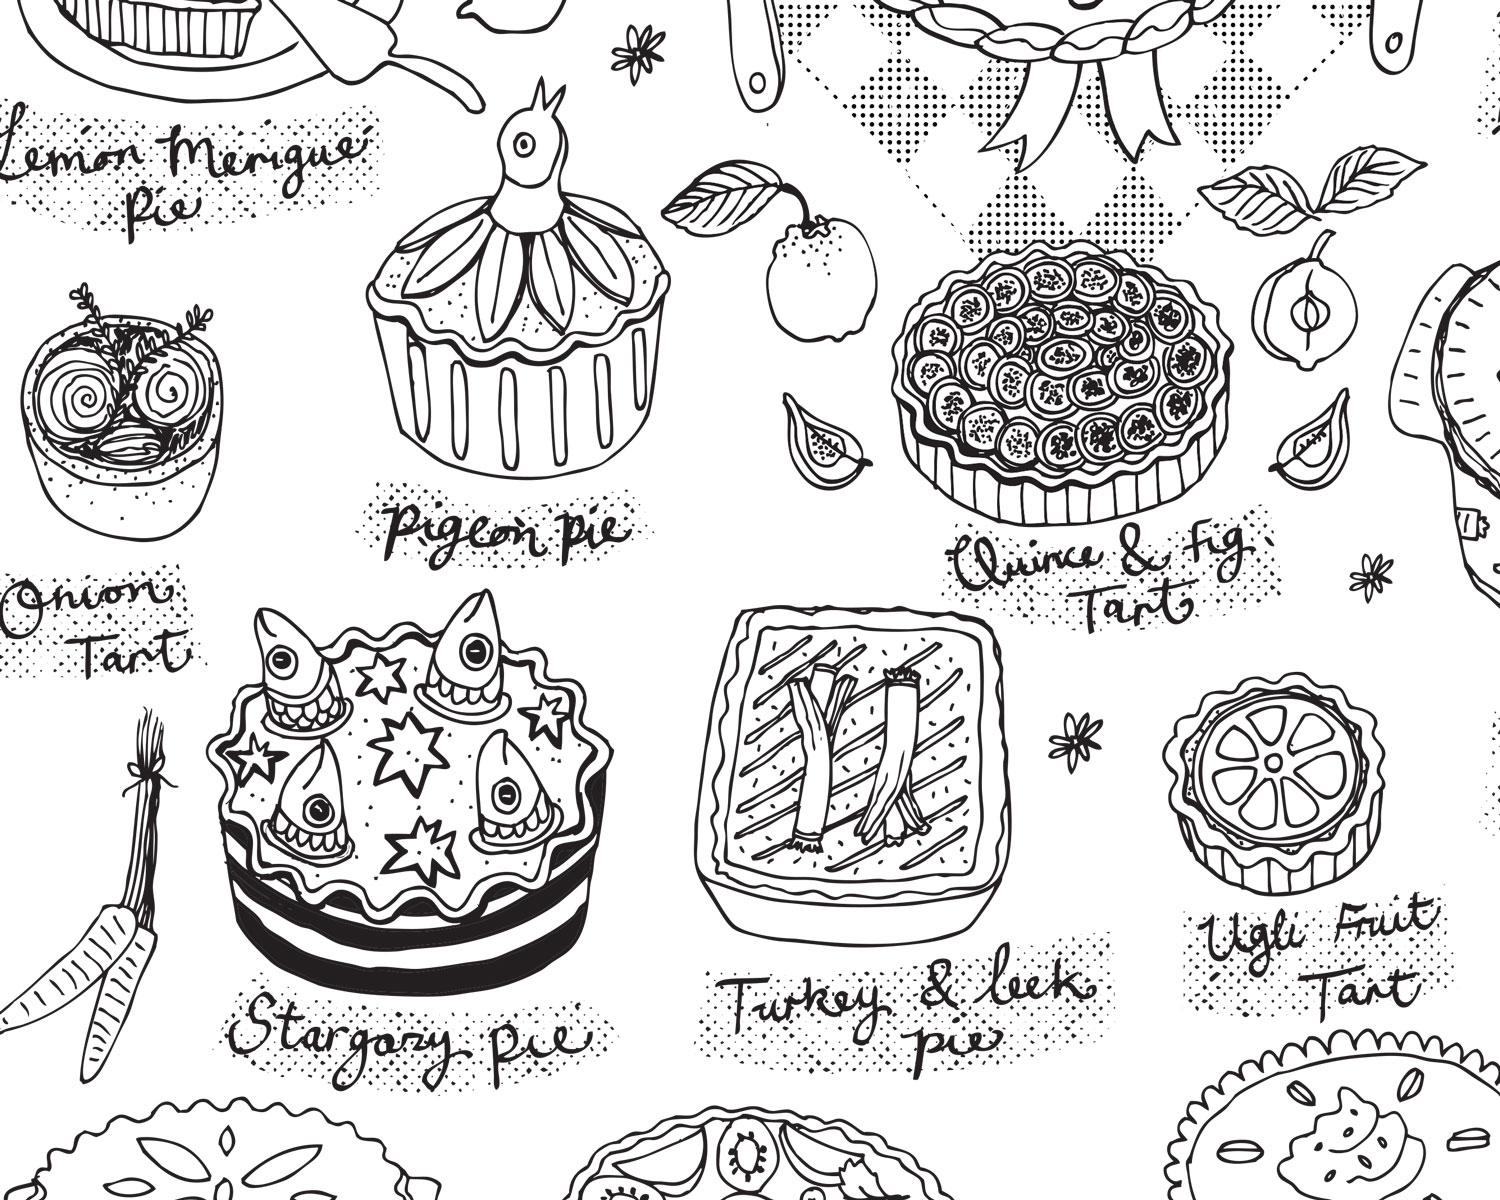 Pies-and-tarts-list